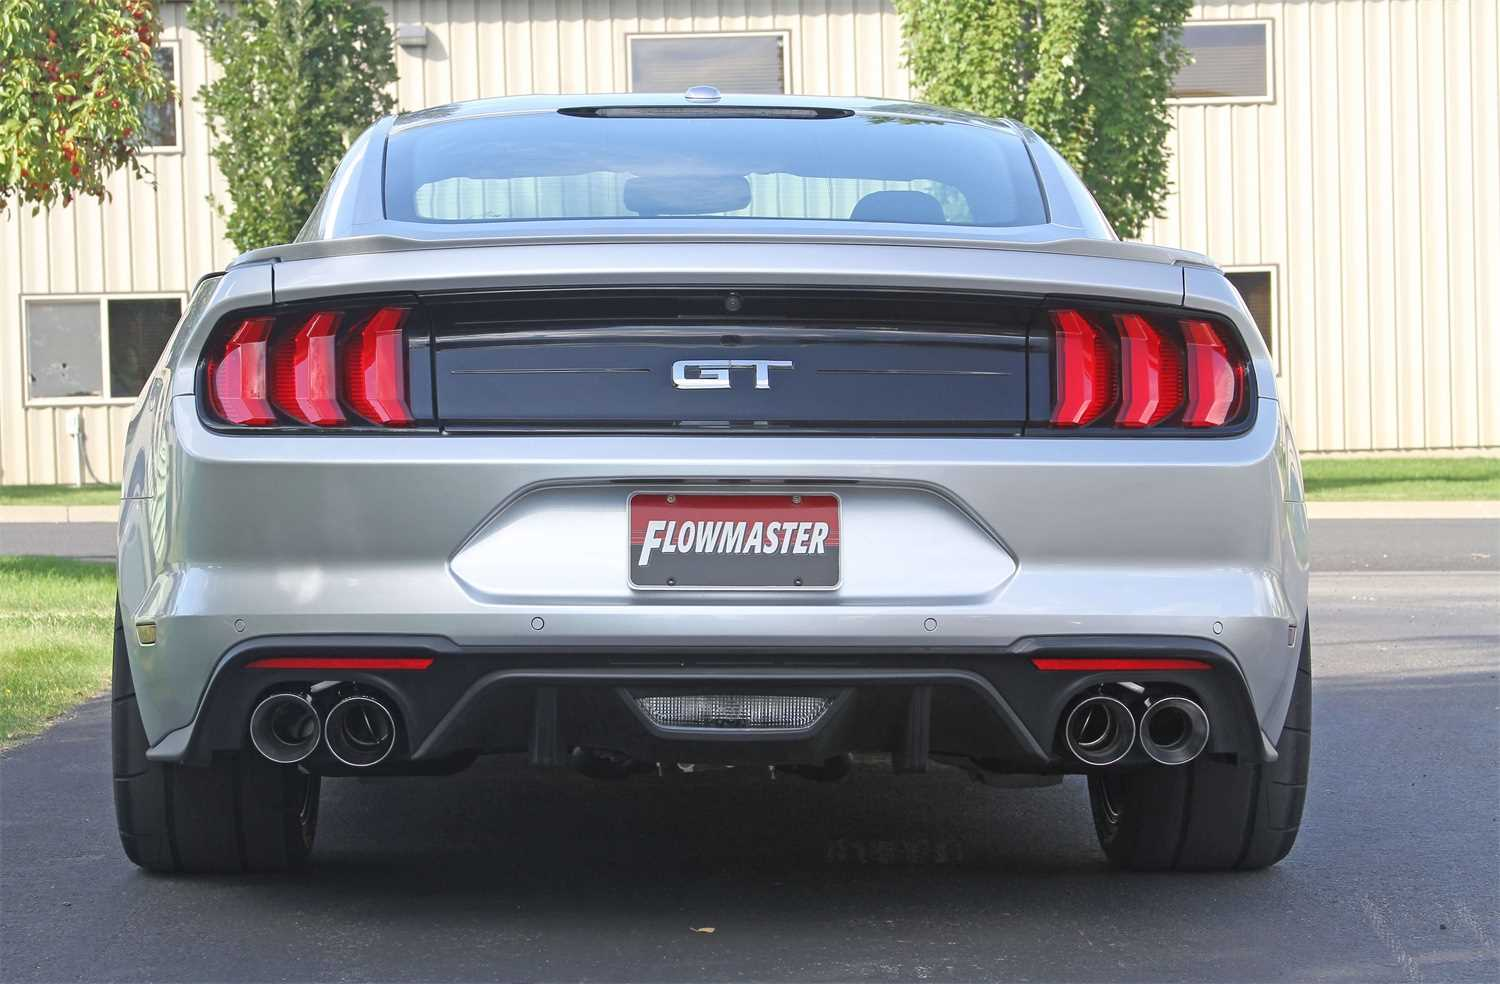 817859 Flowmaster American Thunder Axle Back Exhaust System